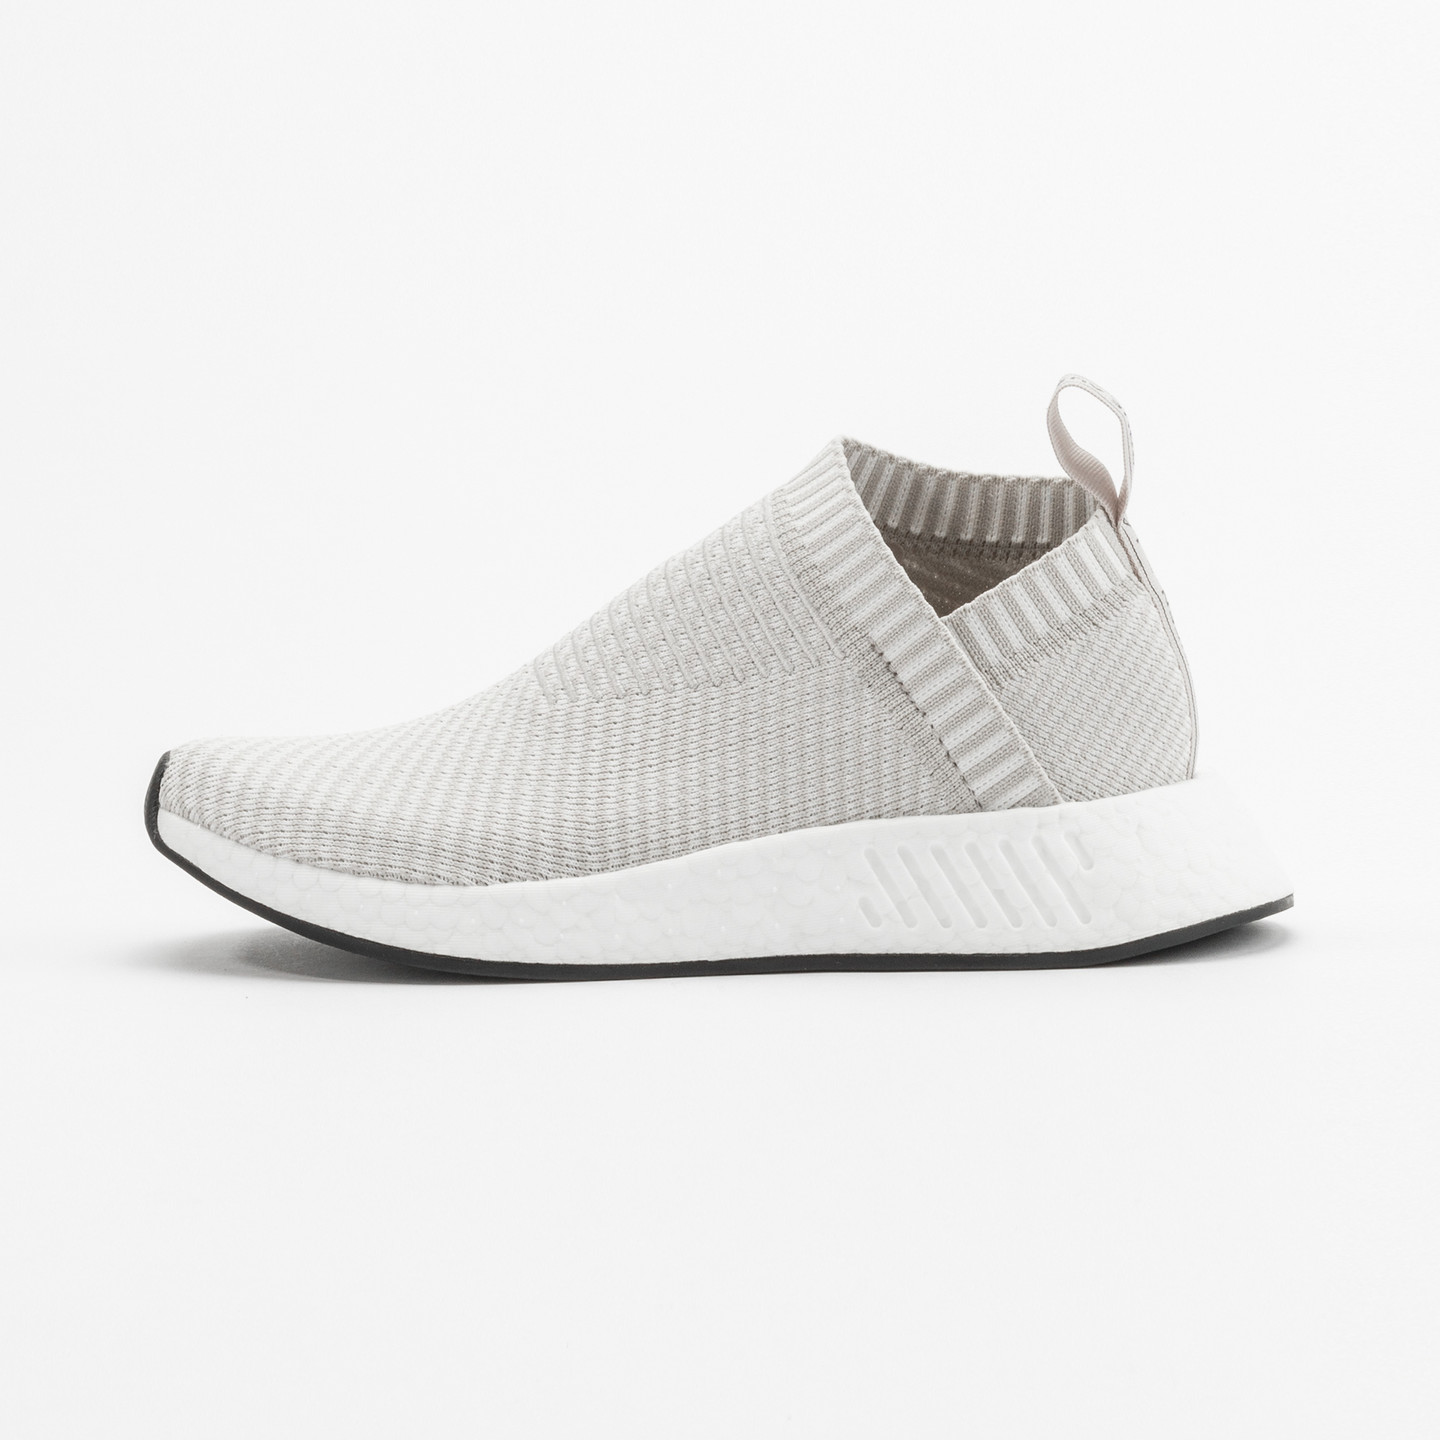 Adidas NMD CS2 PK W Grey / White / Black BA7213-36.66